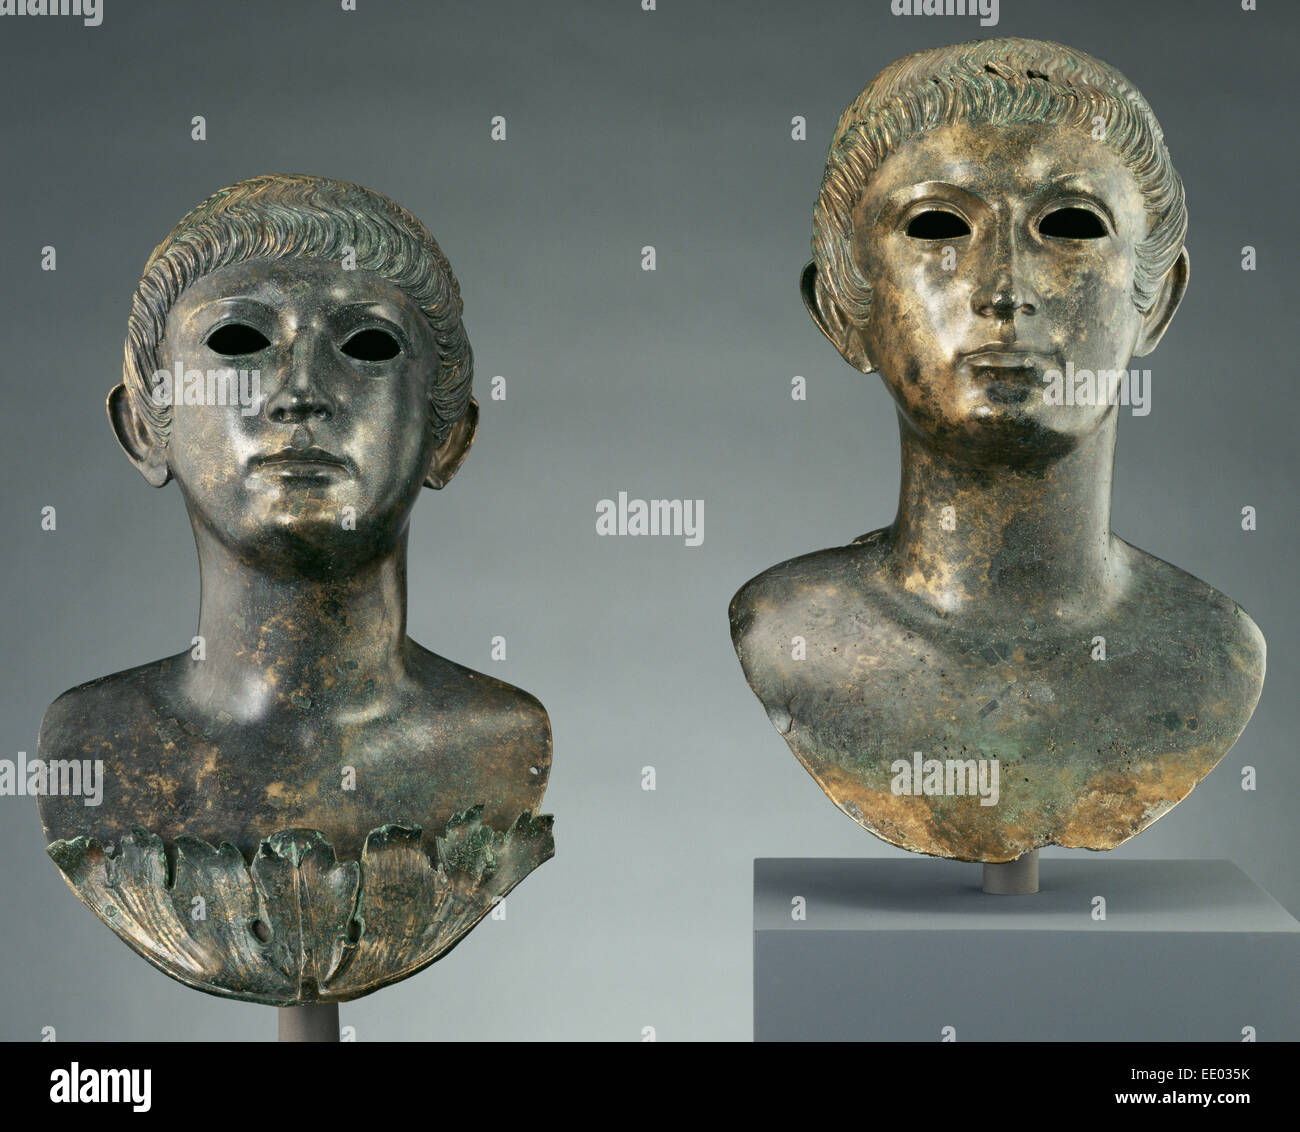 Pair of Portrait Busts of Youths and Two Marble Eyes; Unknown; Gaul, Europe; 60 - 70; Bronze and marble - Stock Image